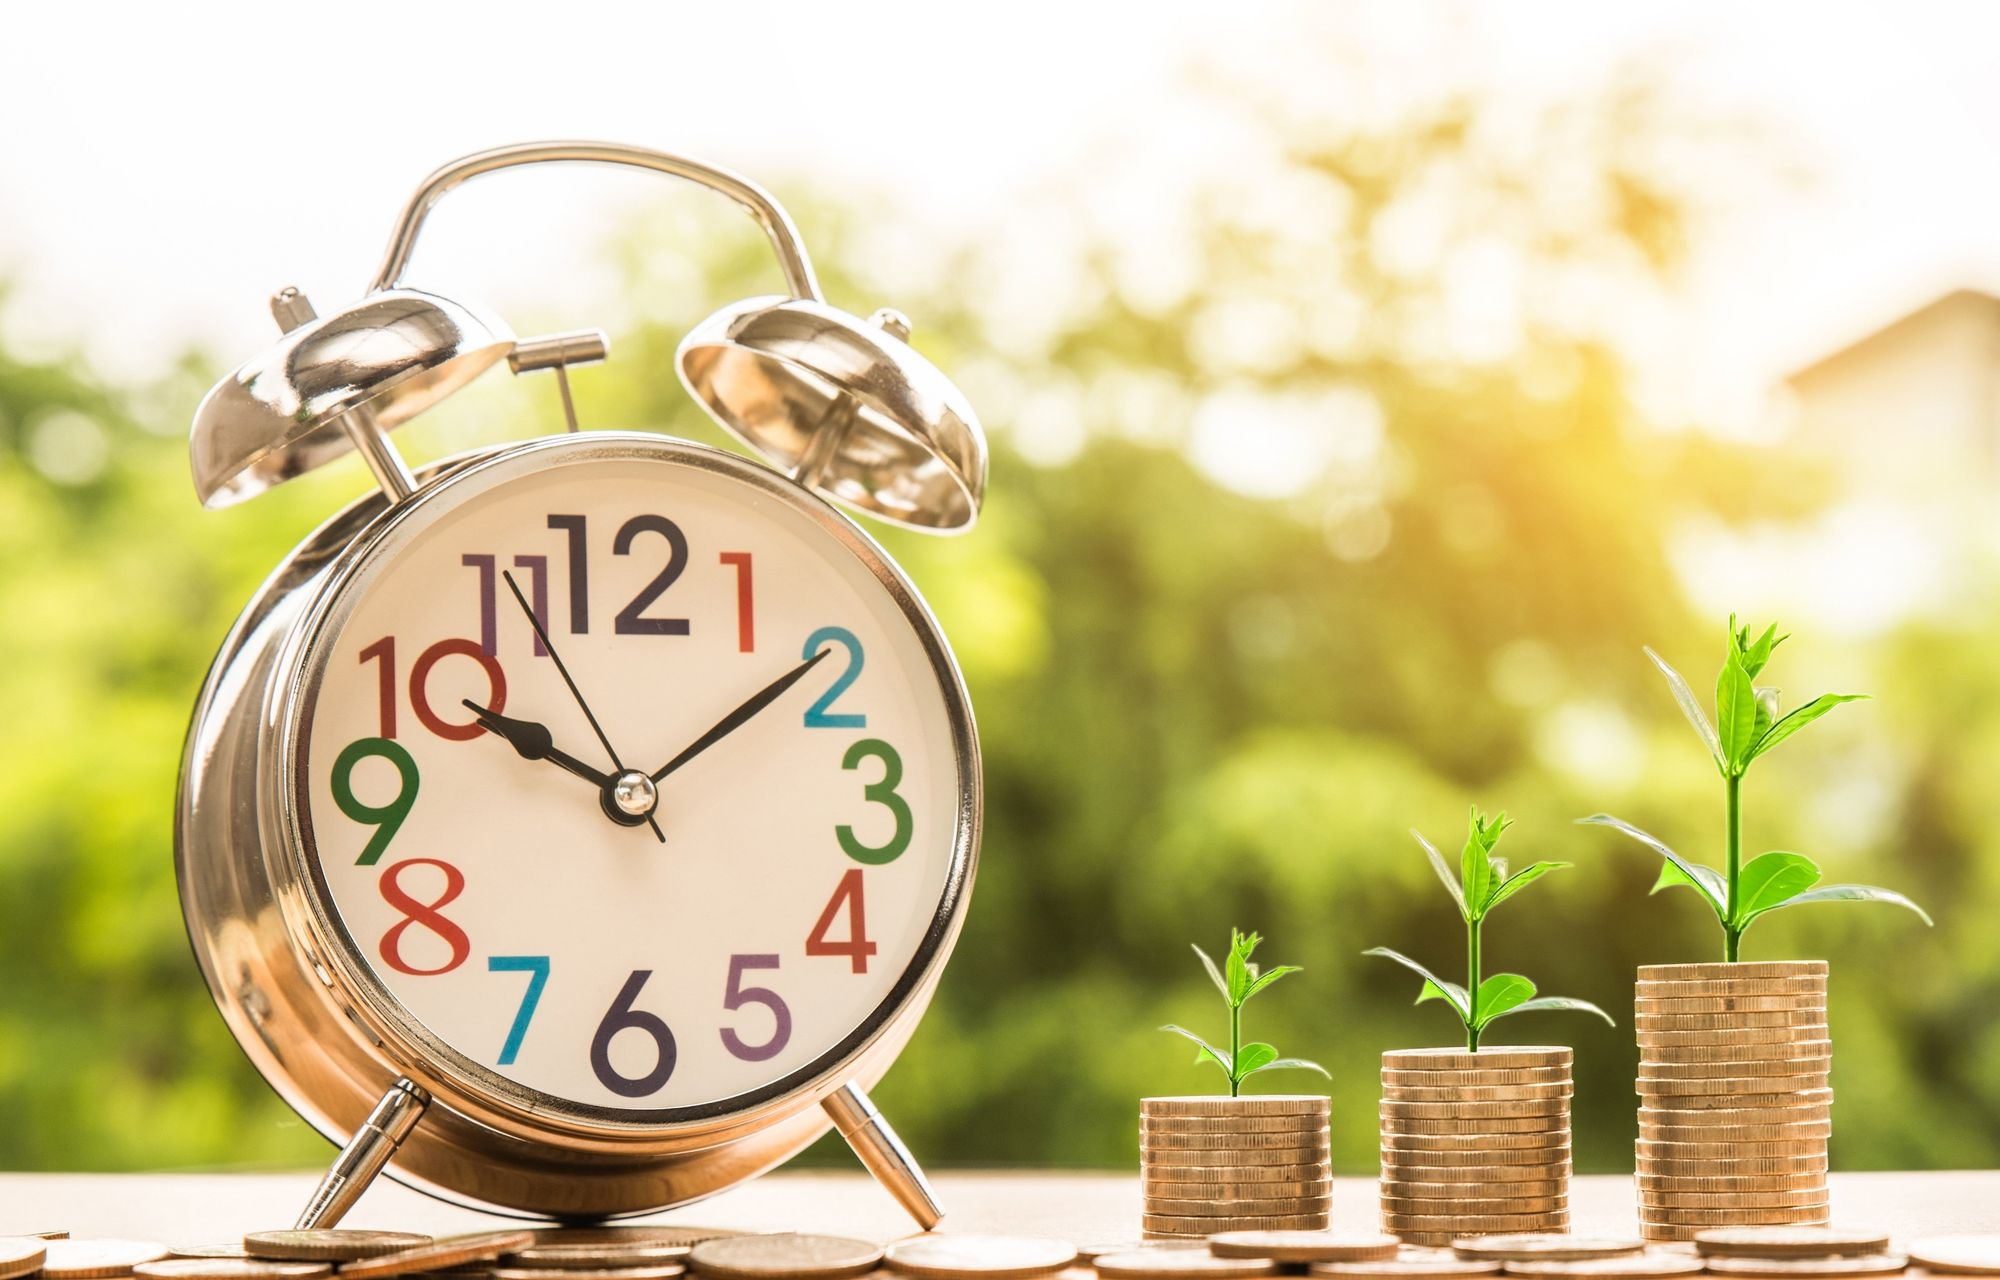 How To Manage Time? And Why Is It Important?